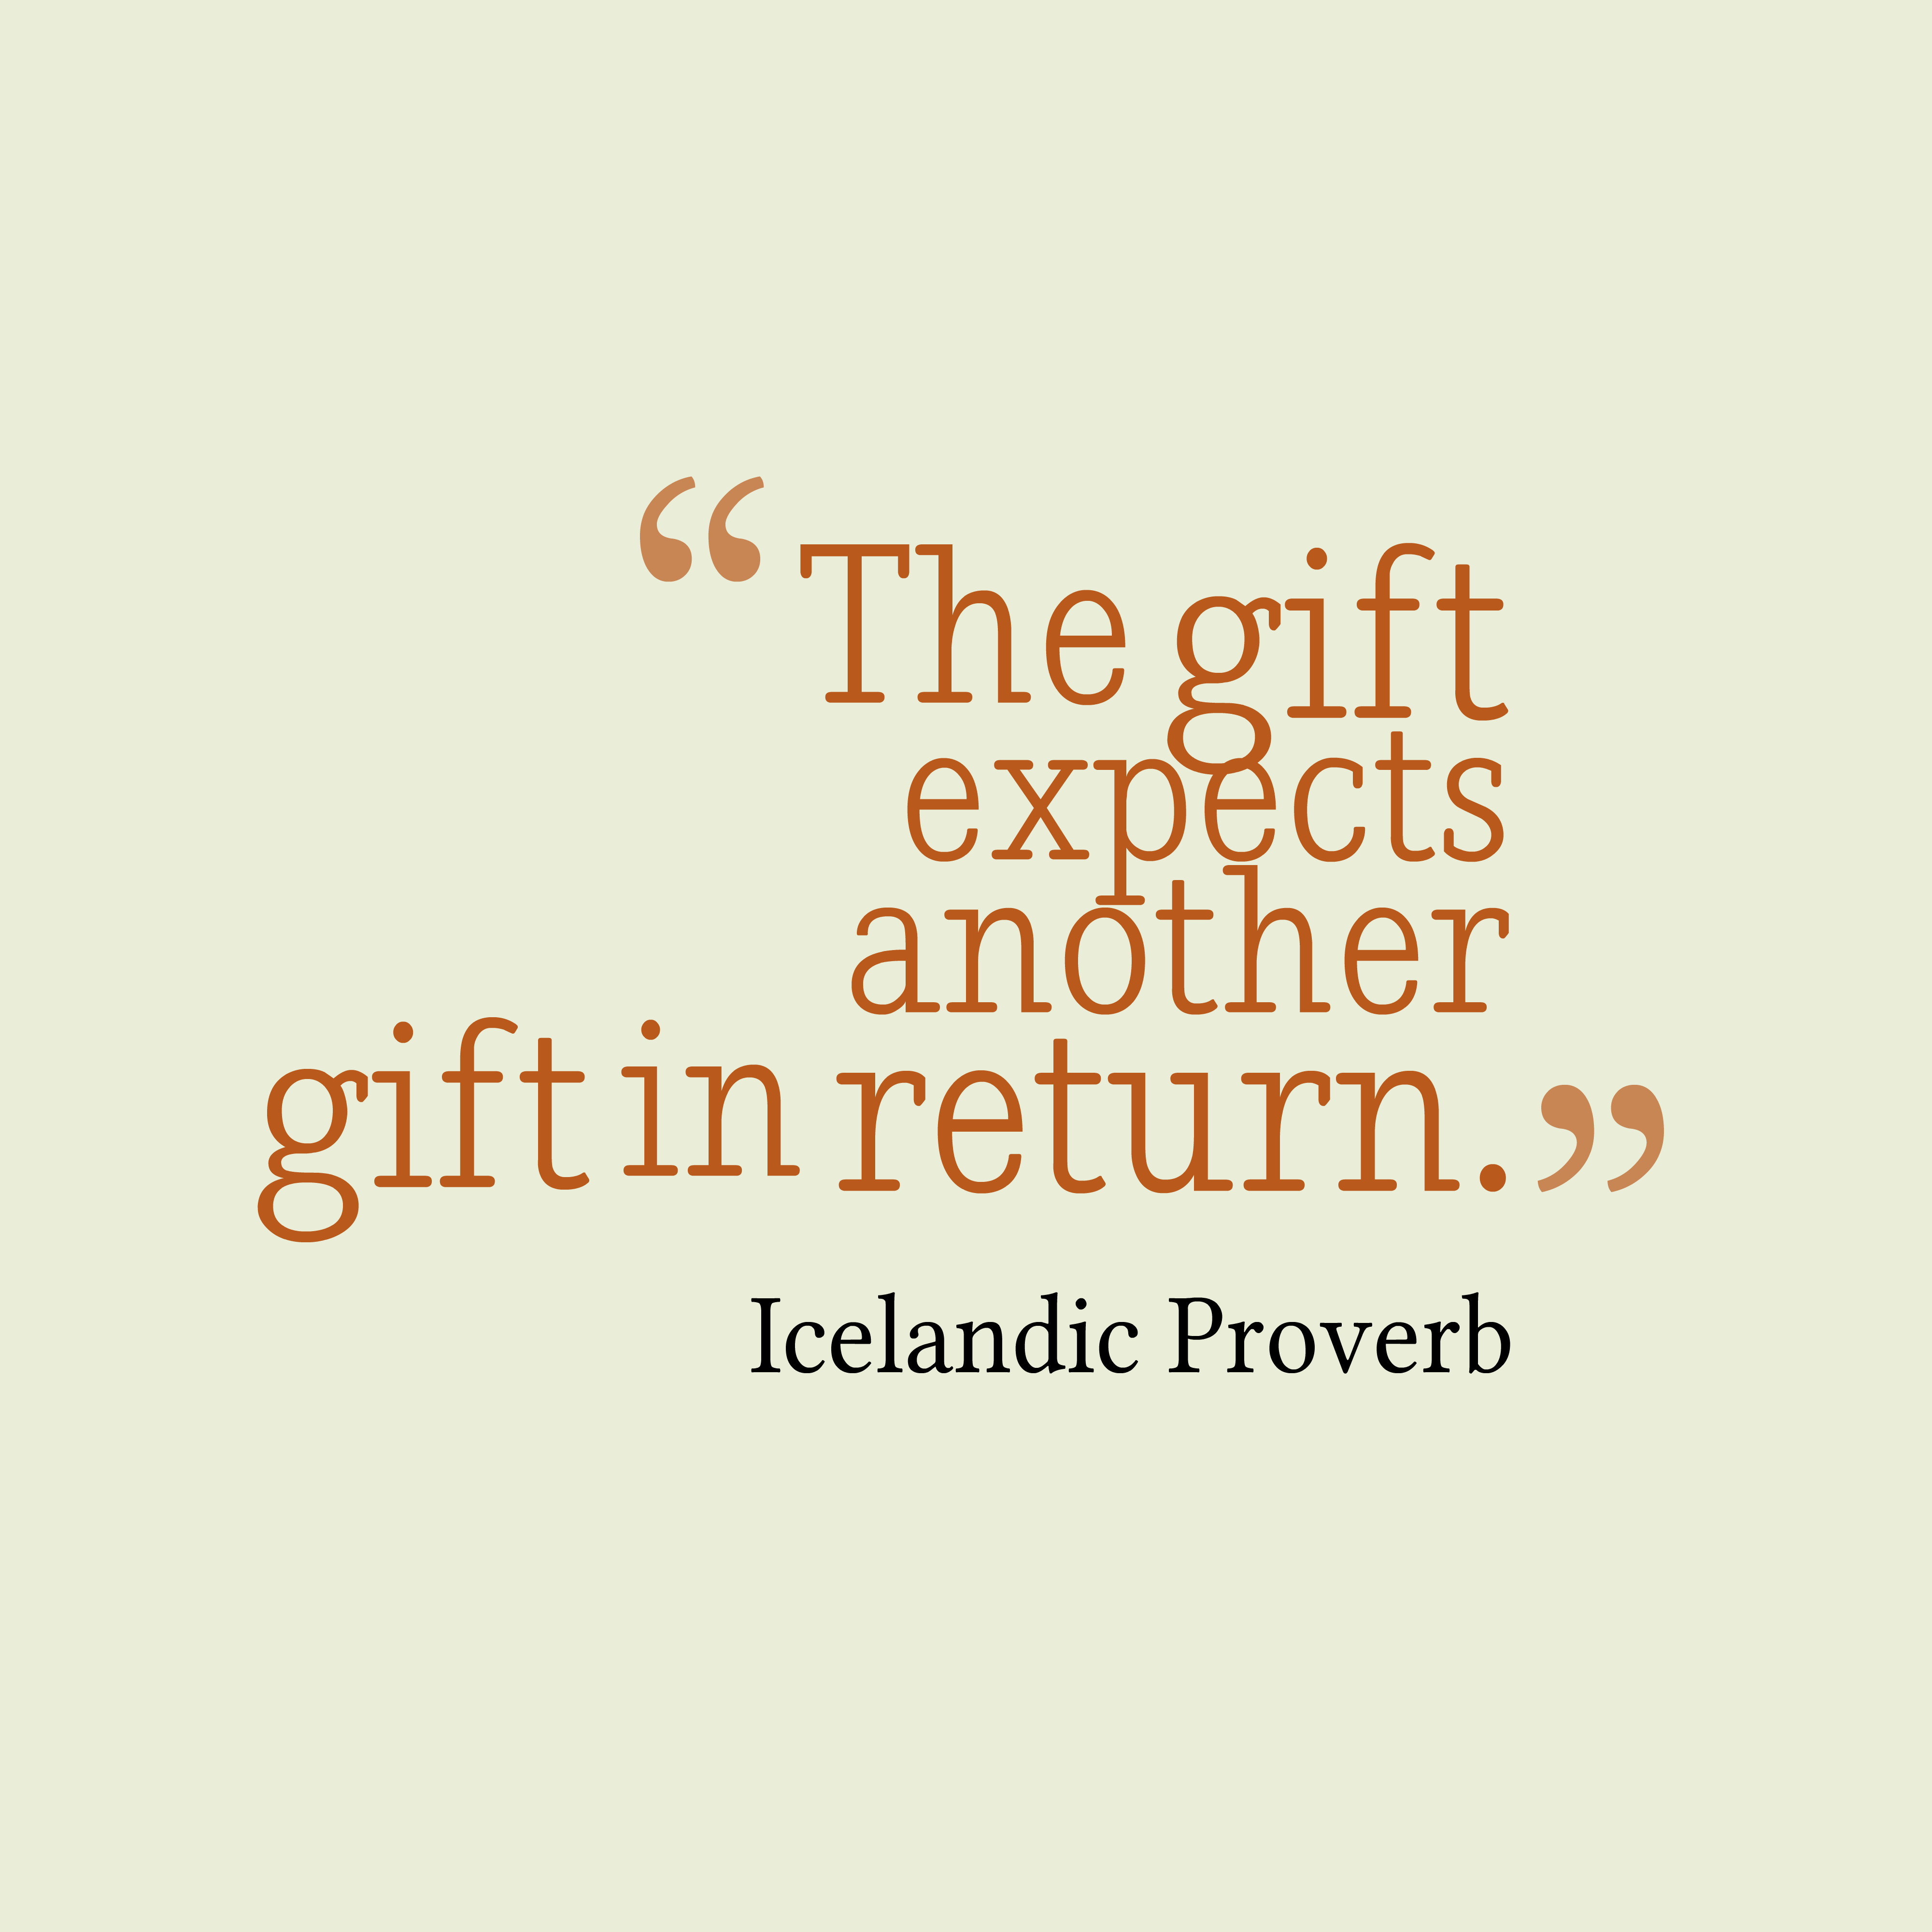 Quotes image of The gift expects another gift in return.